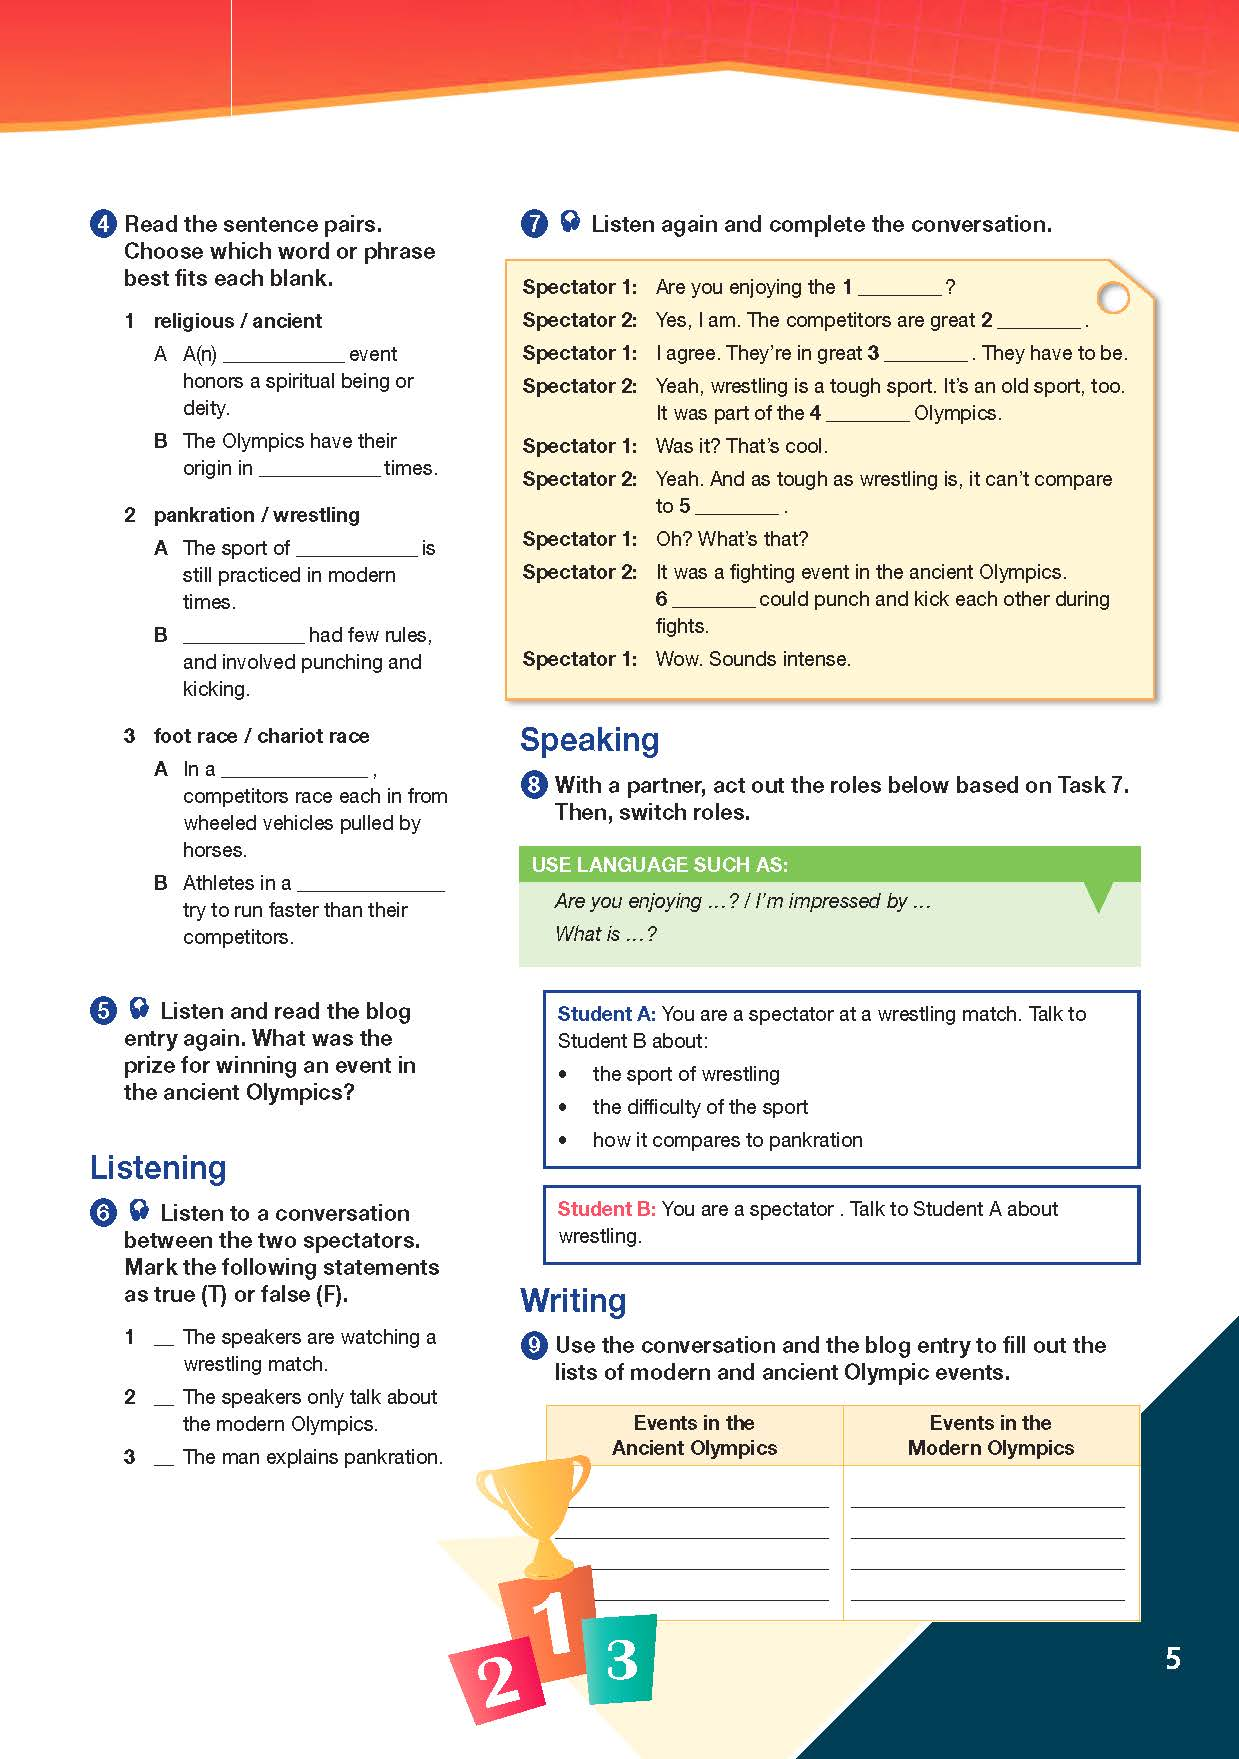 ESP English for Specific Purposes - Career Paths: ESP English for Specific Purposes - Career Paths: Worldwide Sports - Sample Page 2